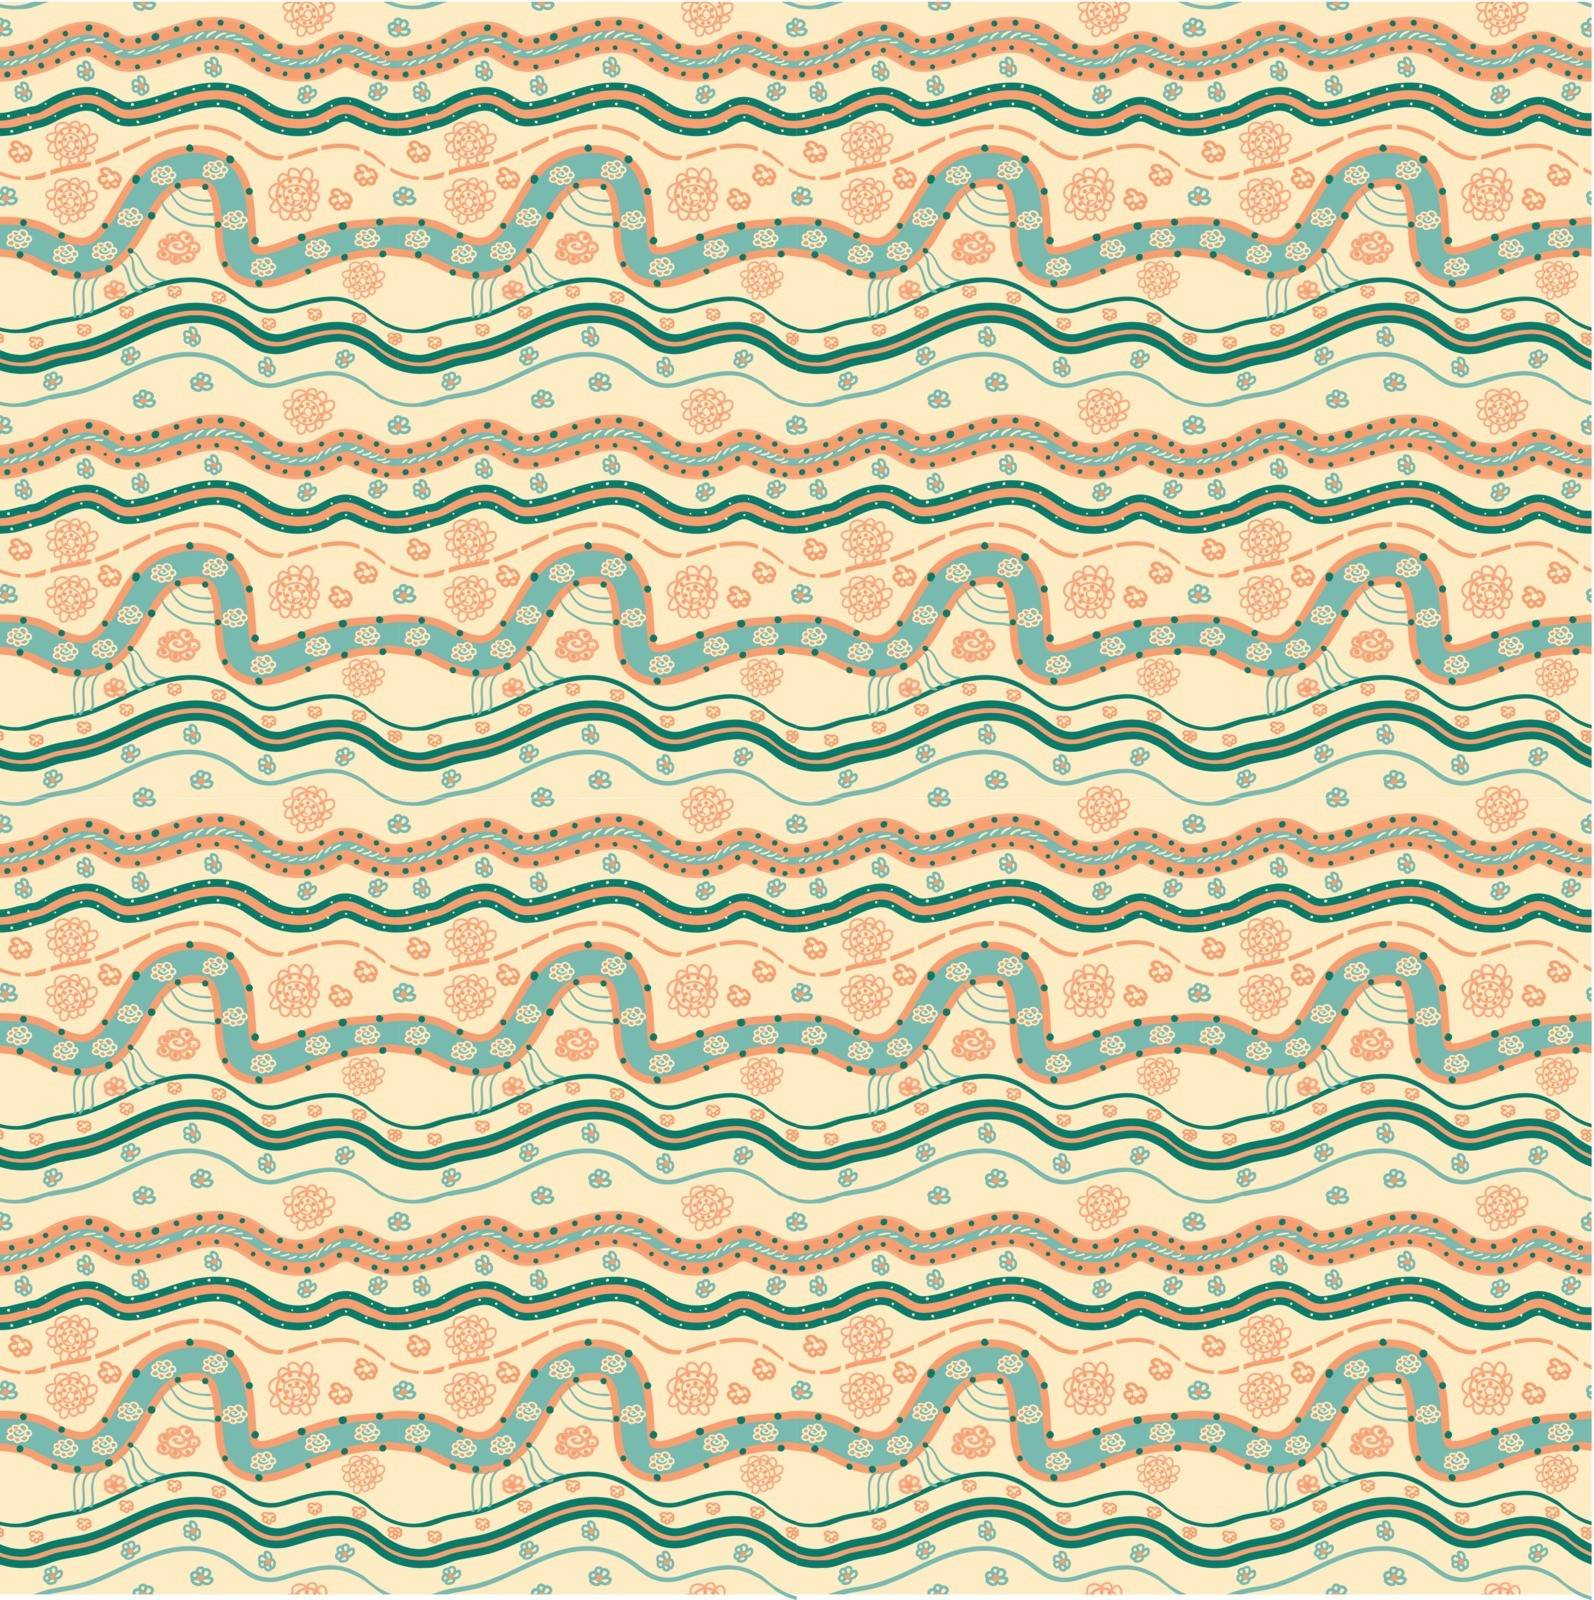 Hand-drawn seamless pattern, abstract lines and flowers